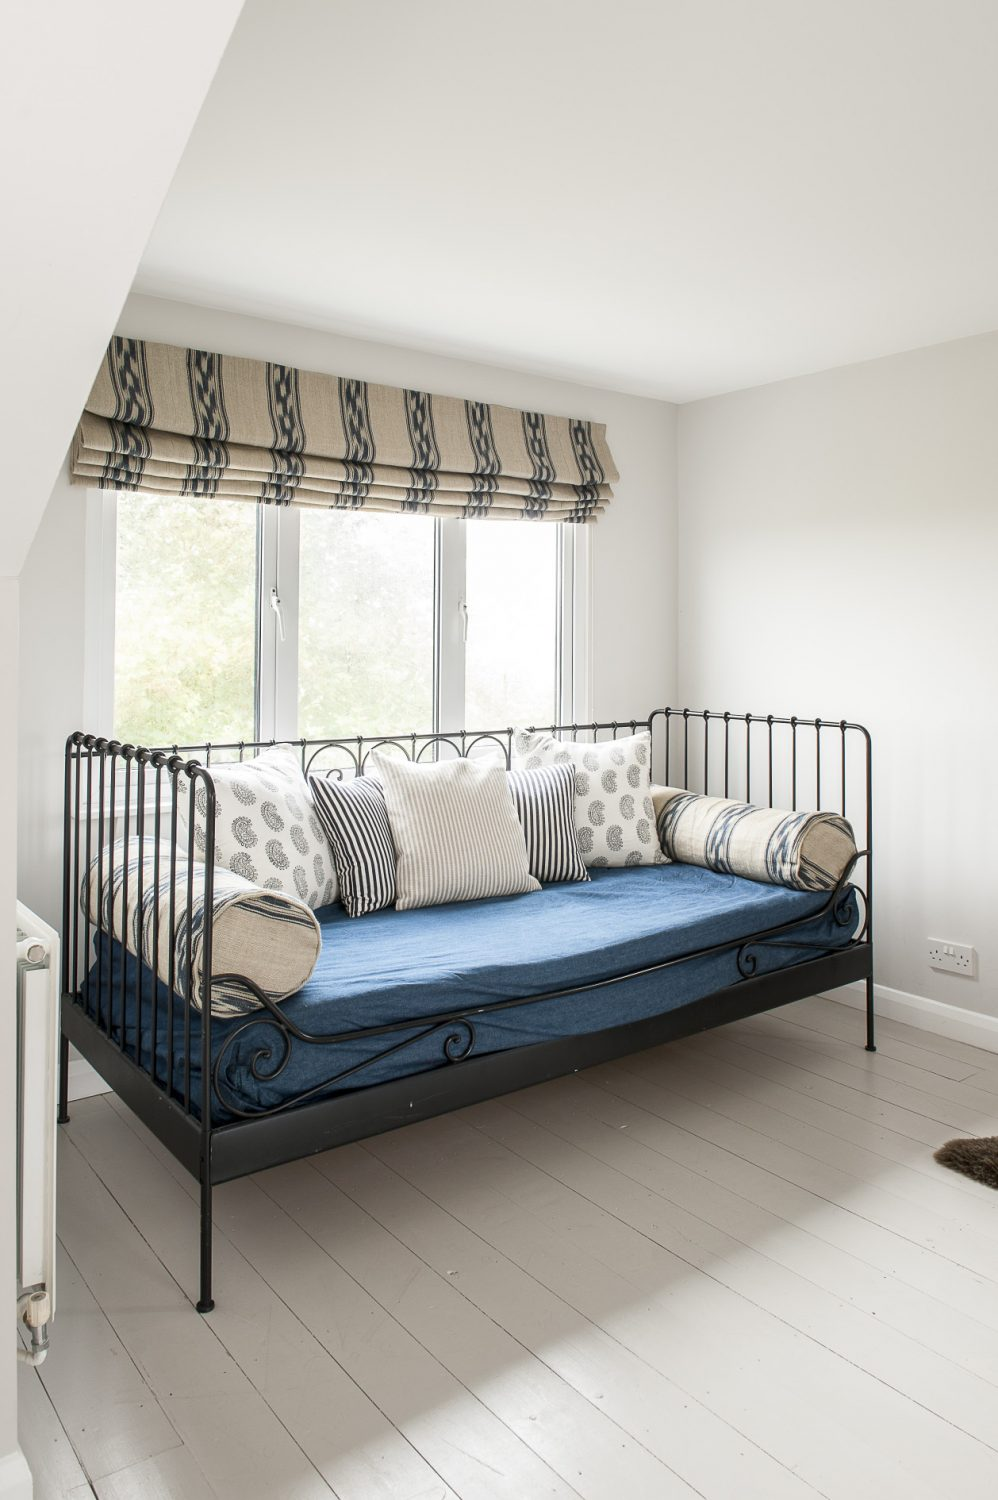 Wrought-iron daybed from IKEA. Francesca designed the Roman blind, which is in Ralph Lauren fabric